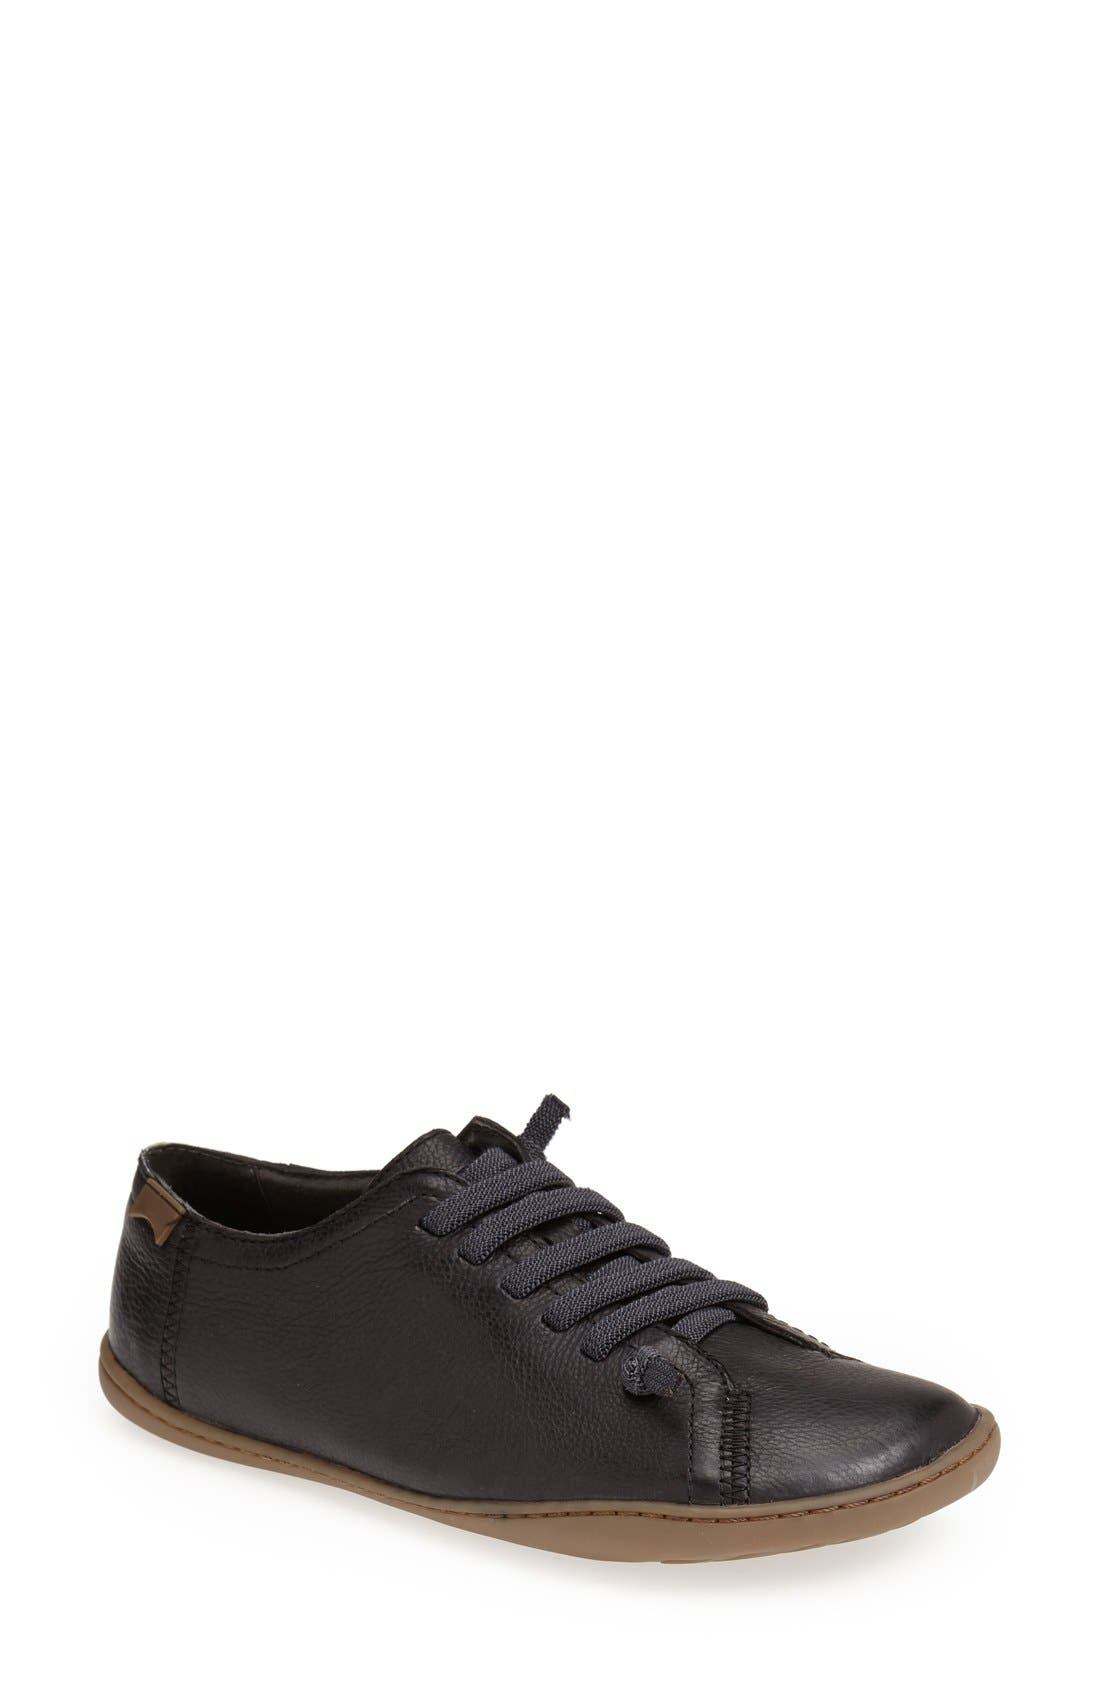 Camper 'PEU CAMI' LEATHER SNEAKER